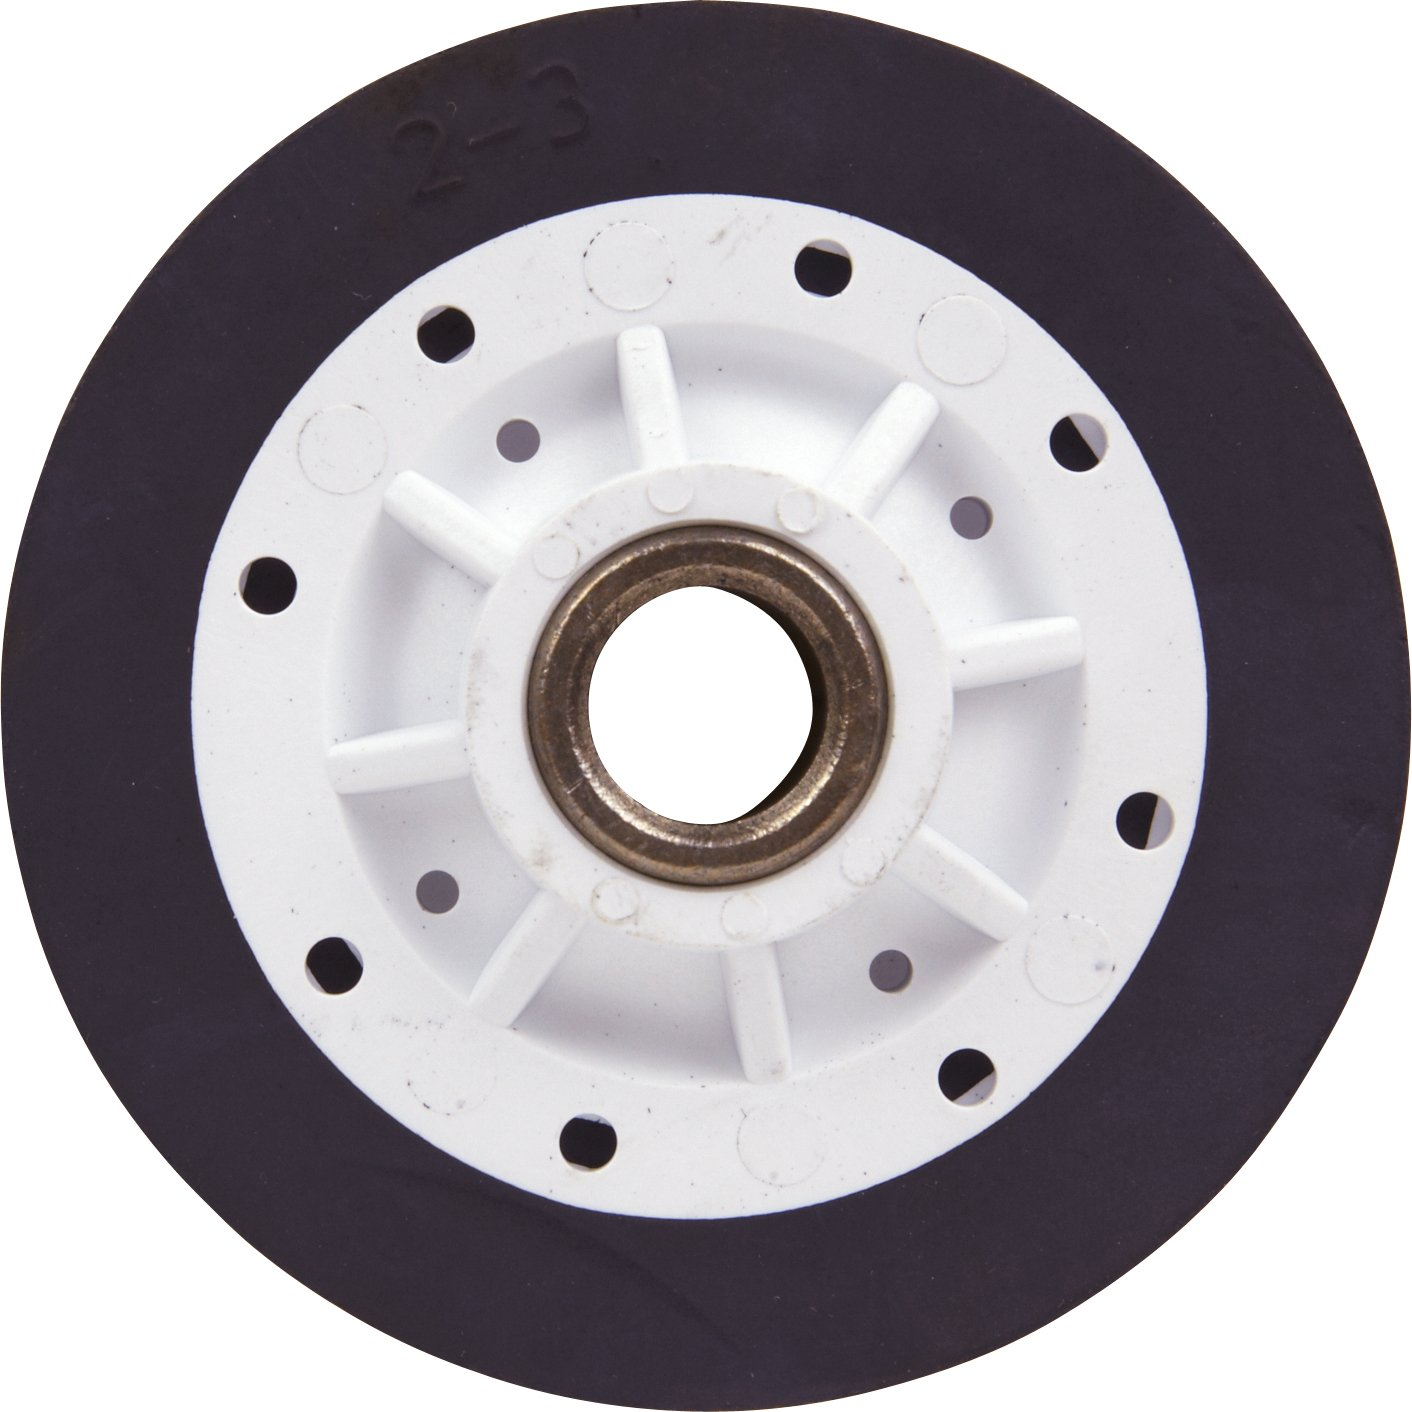 Cheap Drum Roller Compactor Find Deals On Wiring Diagram Whirlpool Ler7646jq0 Get Quotations 37001042 Dryer